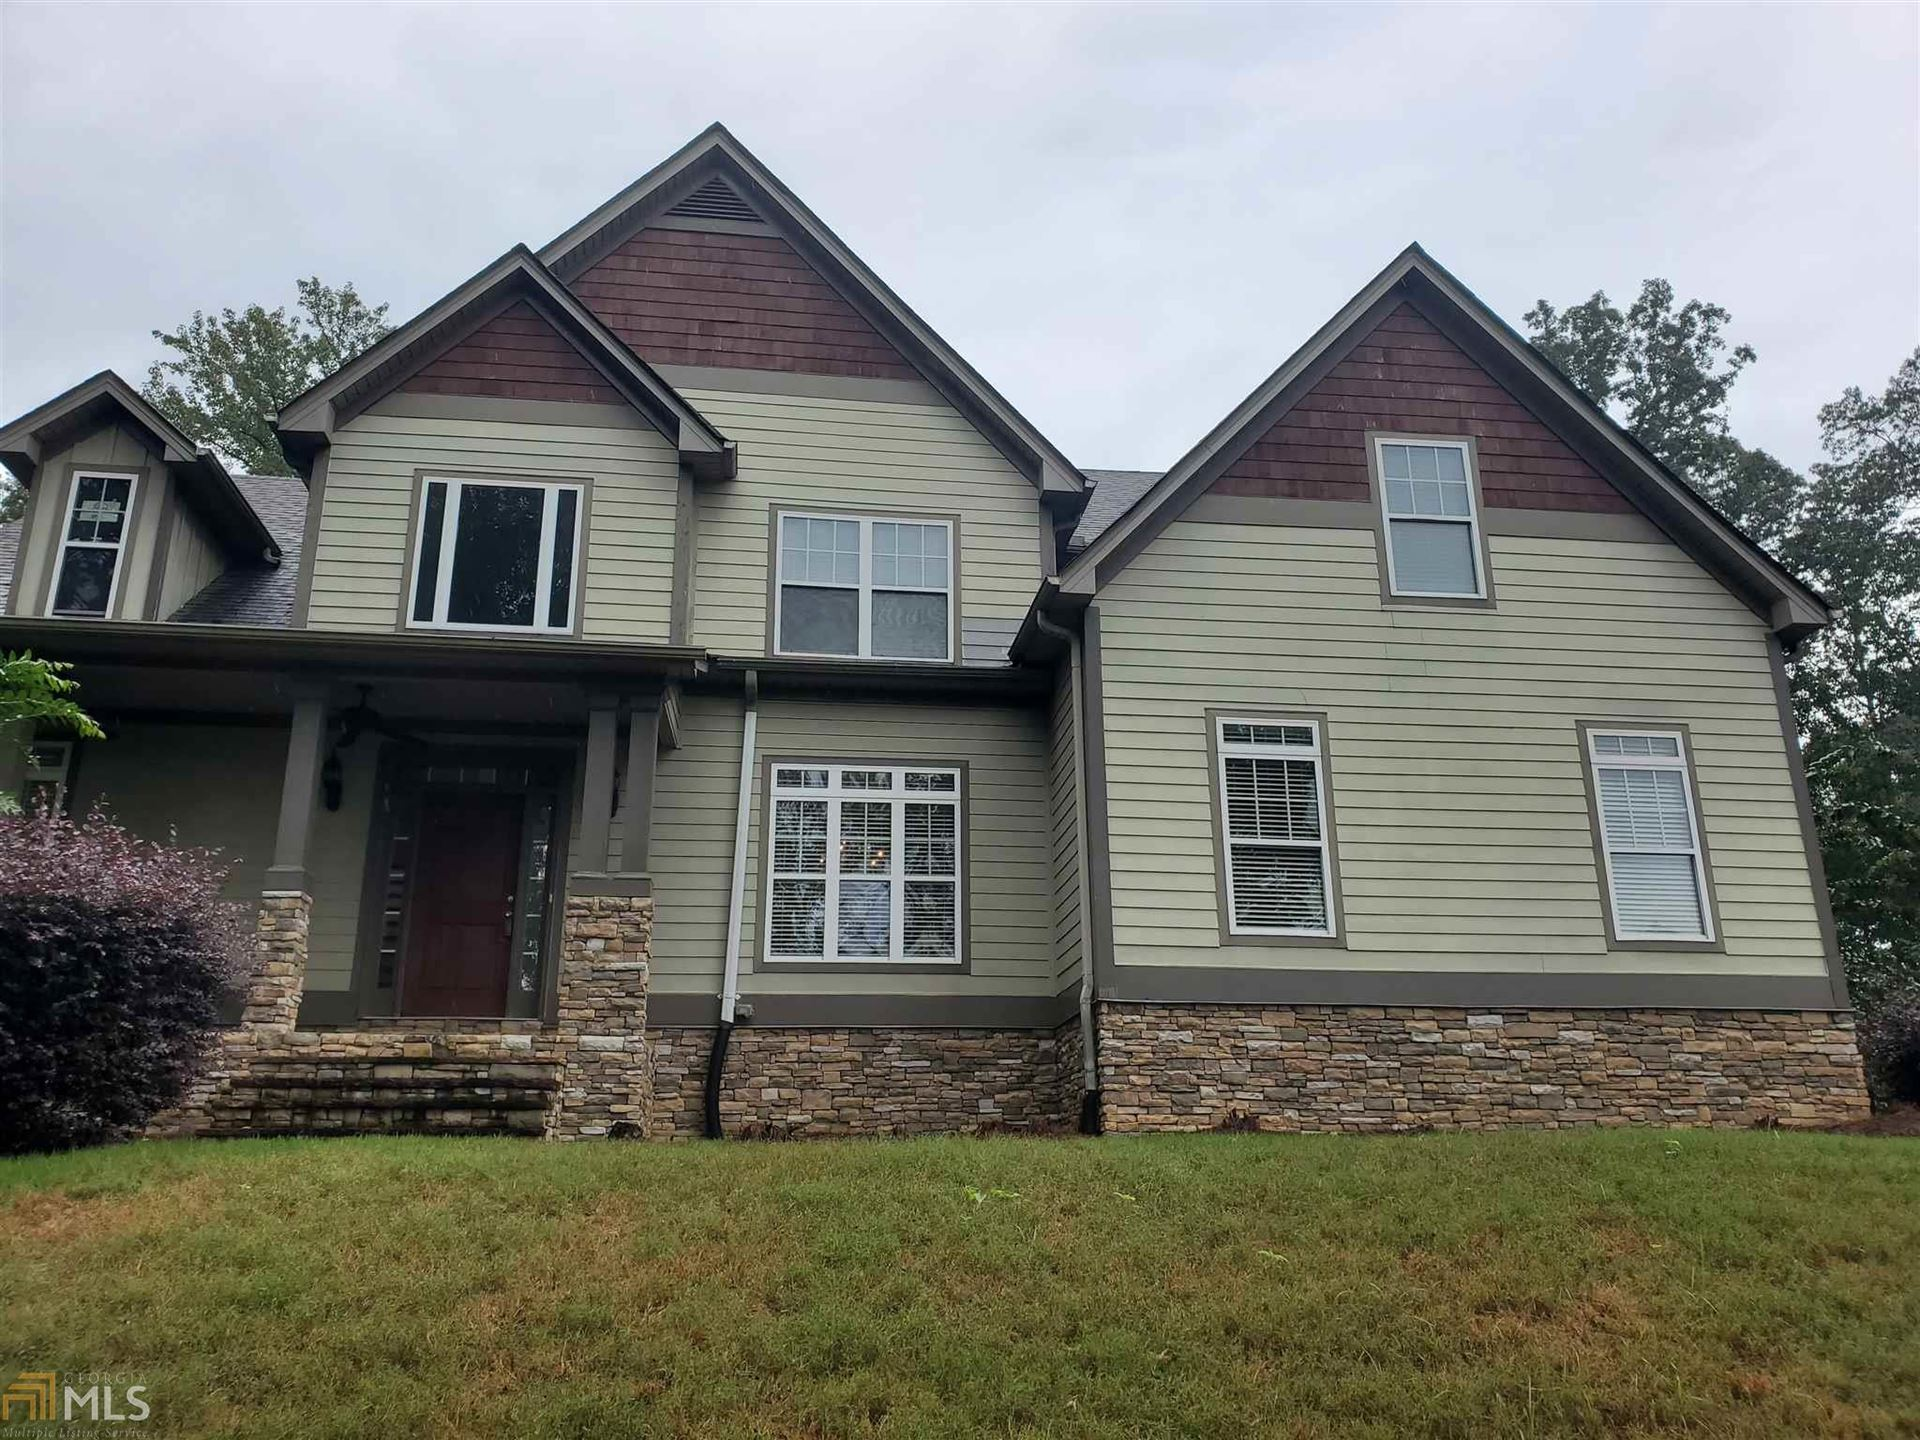 15 Oakhurst Blvd, Oxford, GA 30054 - #: 8864163